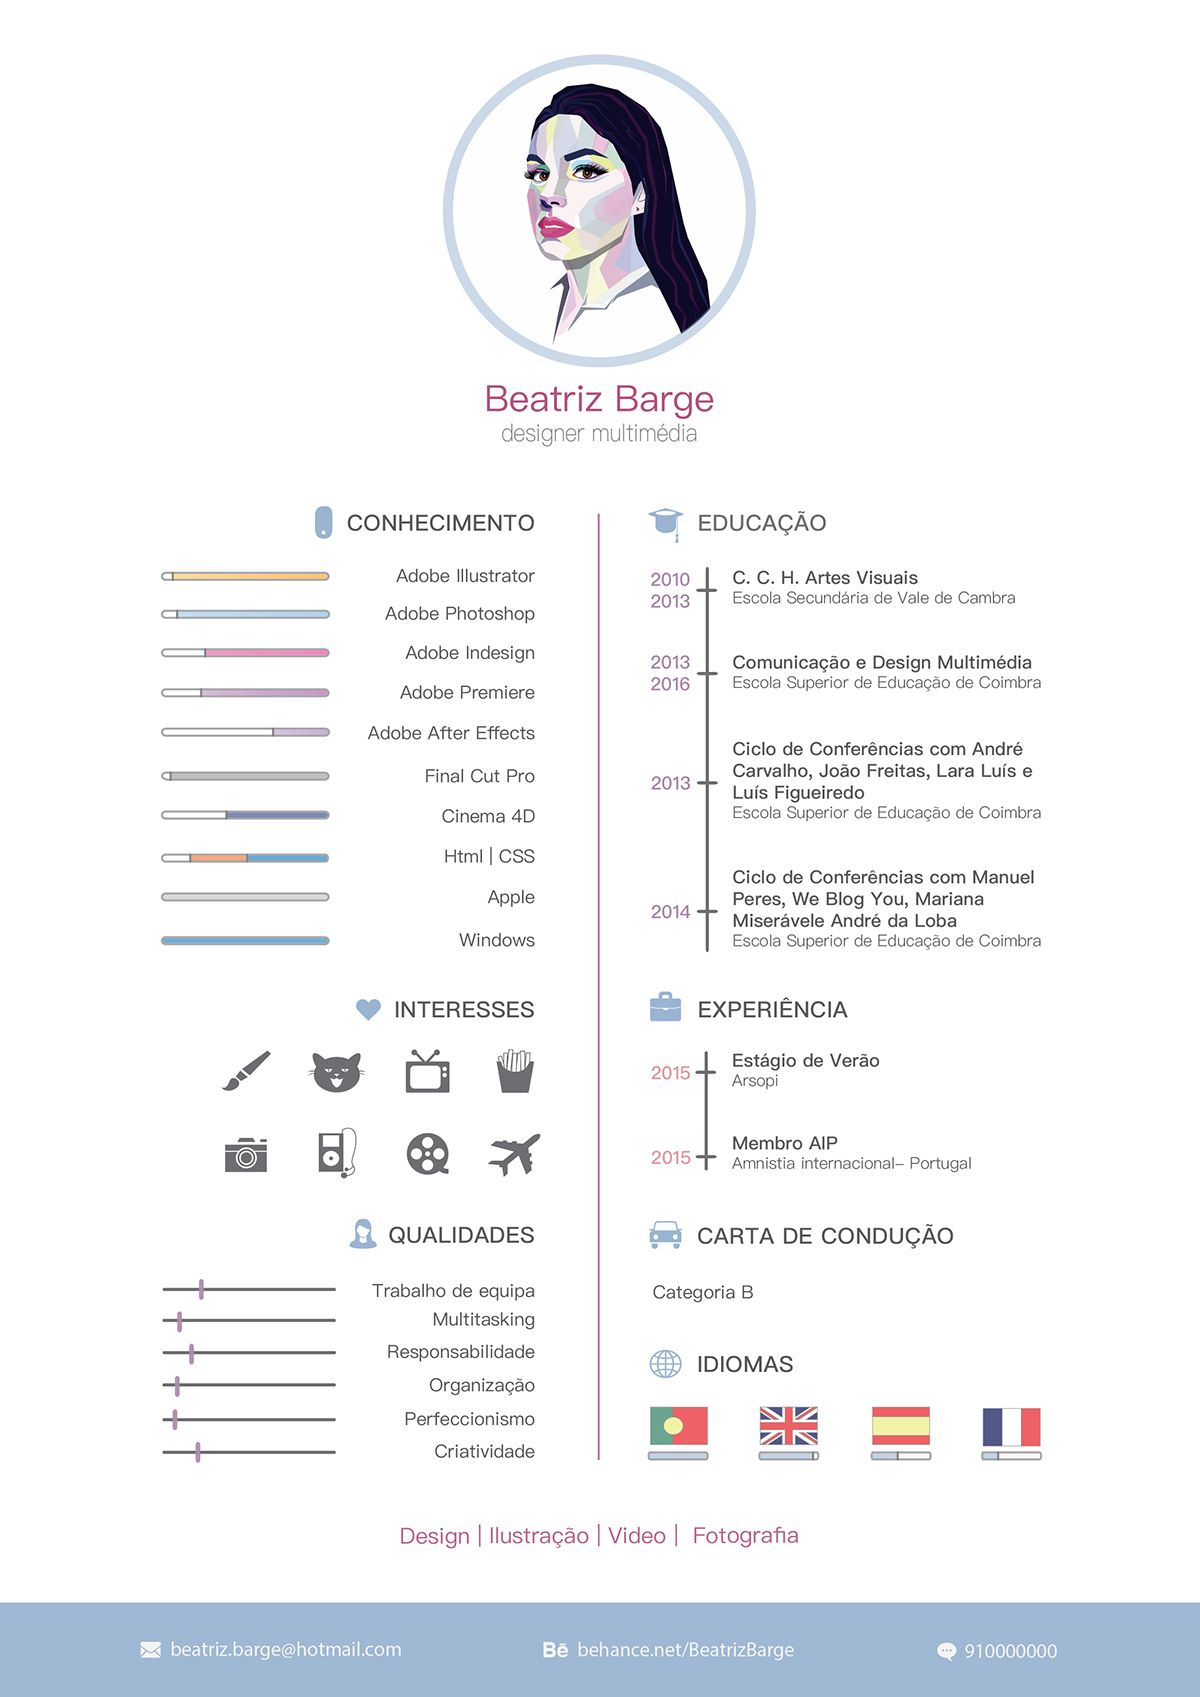 Curriculum vitae on Behance | ✪ RésuMé ✪ | Pinterest | Currículum ...